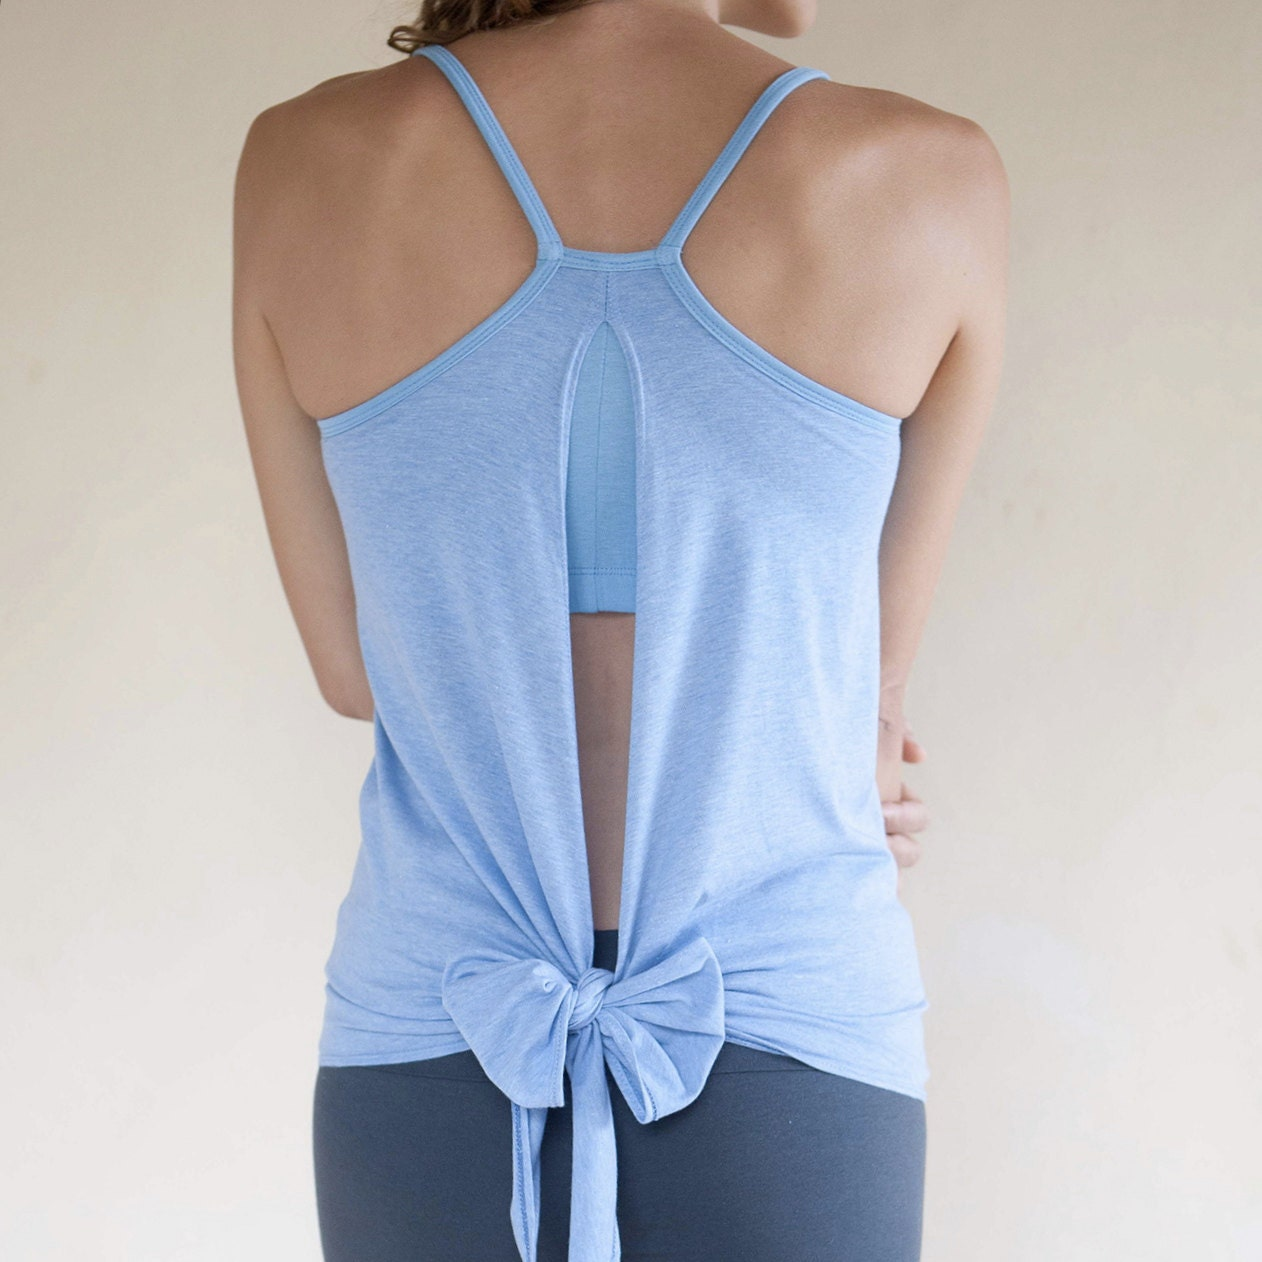 Backless Yoga Tank Ekadasa With Built In Bra By